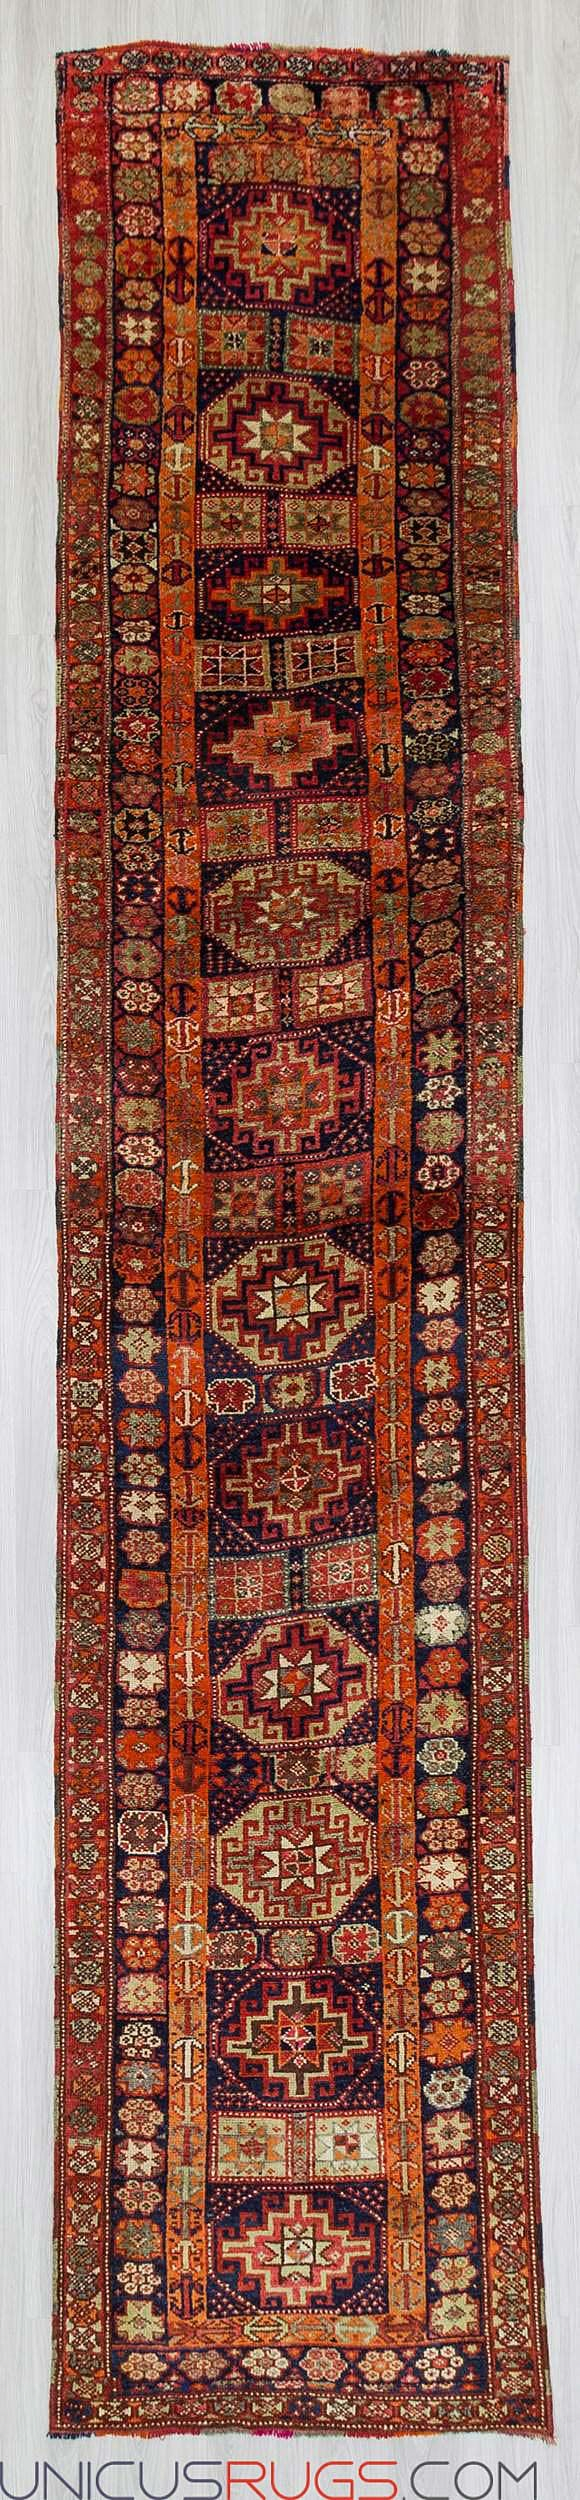 "Antique runner rug from Hakkari region of Turkey.In excellent conddition.Approximately 80-90 years old Width: 3' 5"" - Length: 16' 9"" RUNNERS"